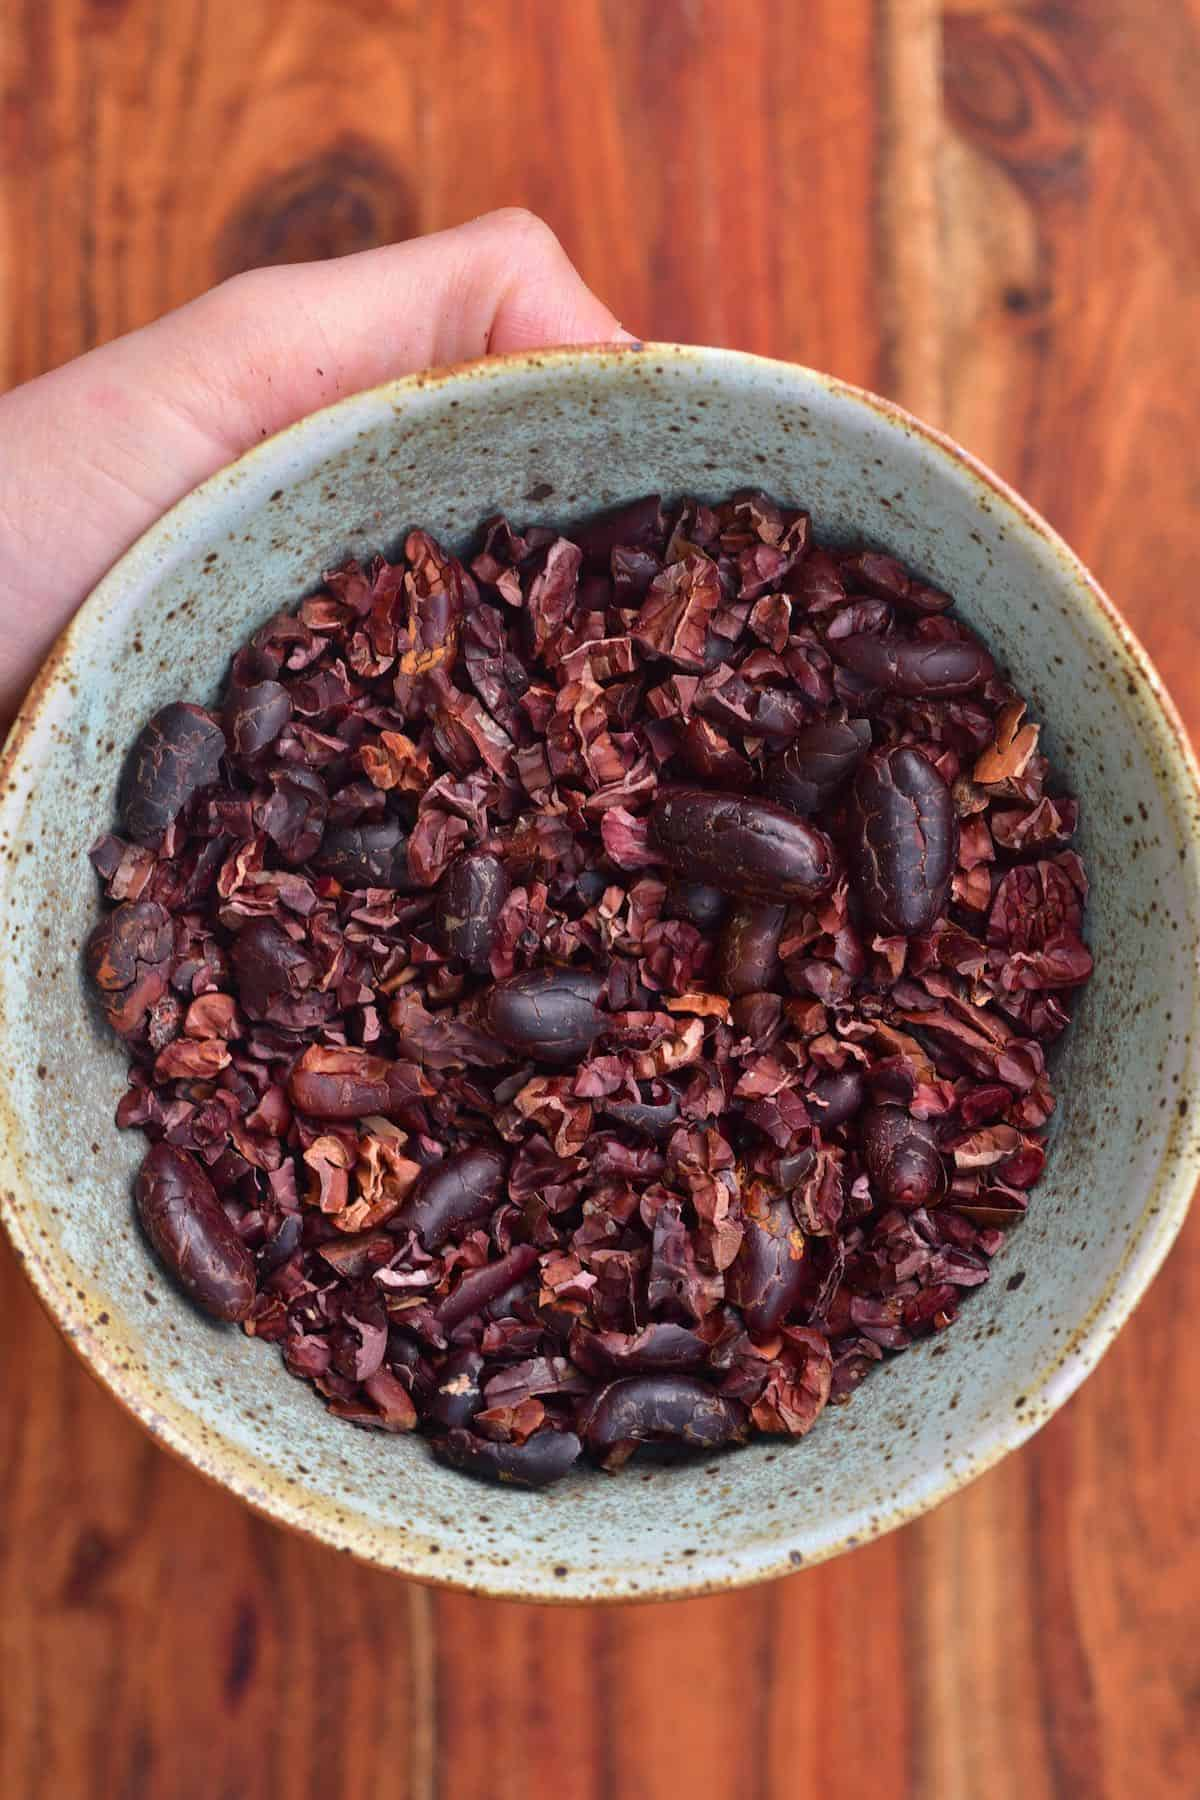 Cacao nibs in a plate